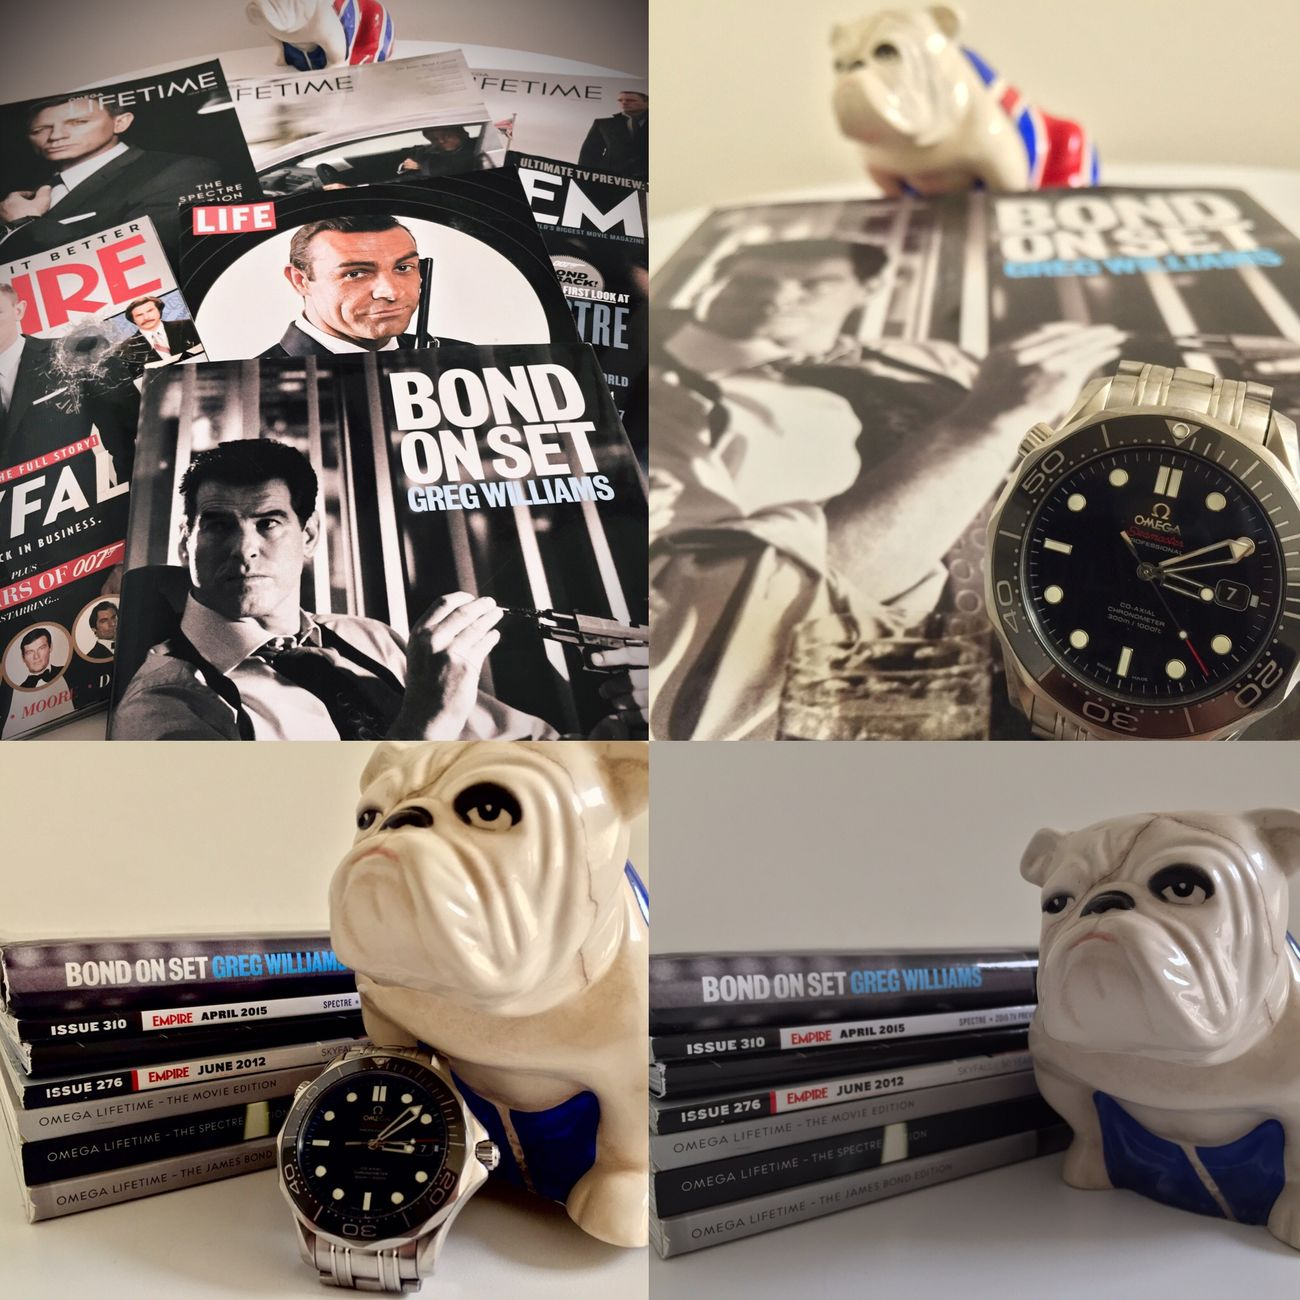 "My new book ""Bond on Set"" to add to my love of all things James Bond. LGarciaPhotography Jame Bond Bond On Set Daniel Craig Pierce Brosnan Sean Connery 007 Bond Collection Magazine Books Omega Omega Seamaster Omega Watches Omega Seamaster 300m My Hero IPhoneography Iphone 6 Plus Light And Shadow Jack The Bulldog Bulldog Watches Greg Williams Photography I Need A Hero Man Crush"